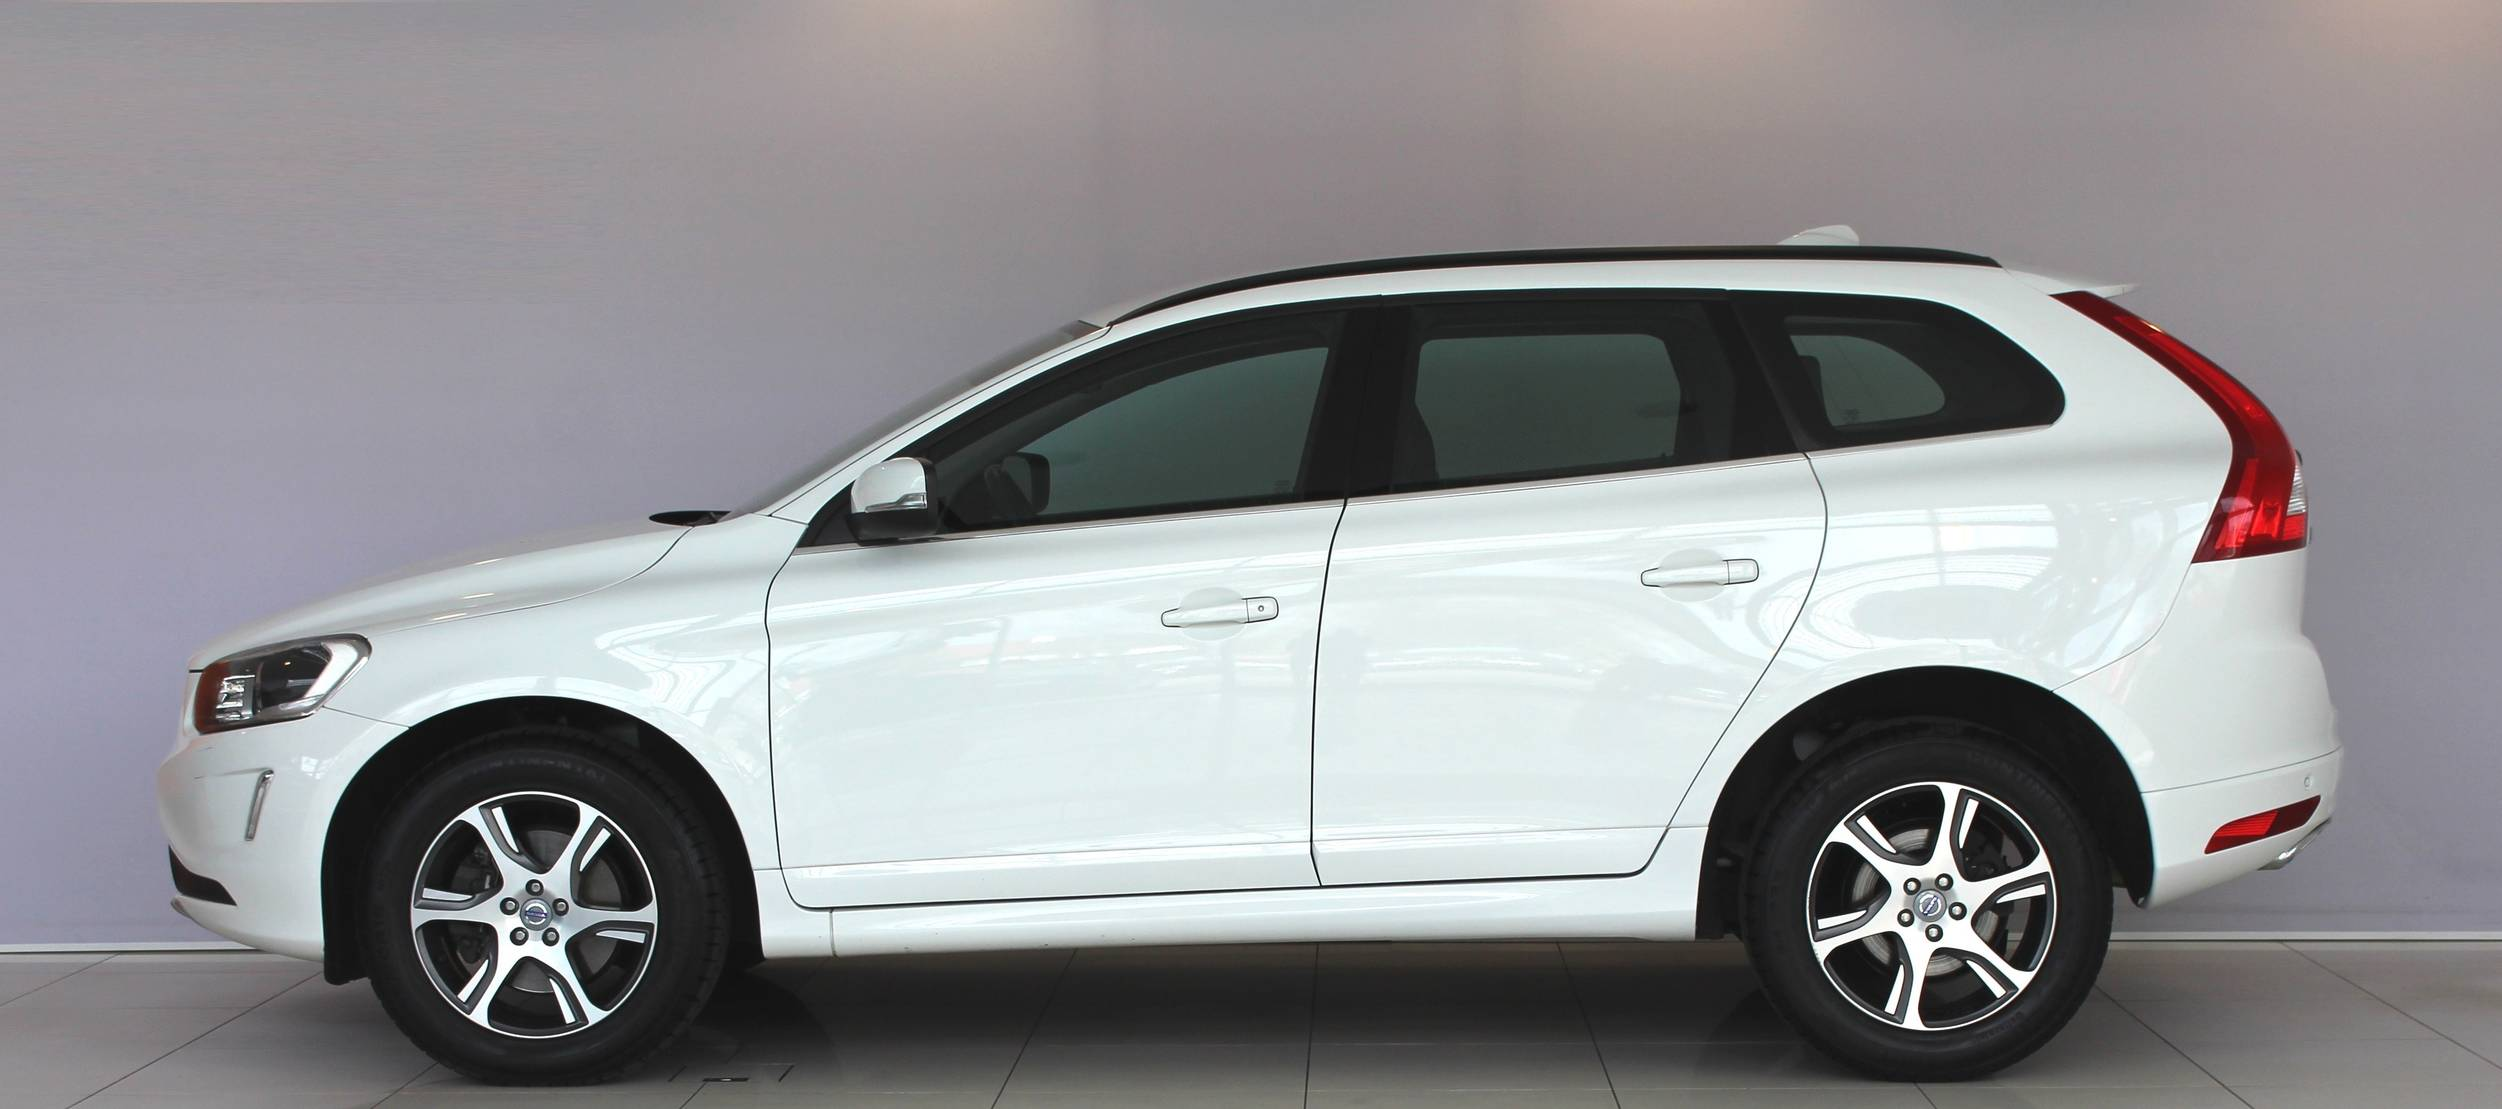 Volvo XC60 D4 Geartronic, Momentum detail2